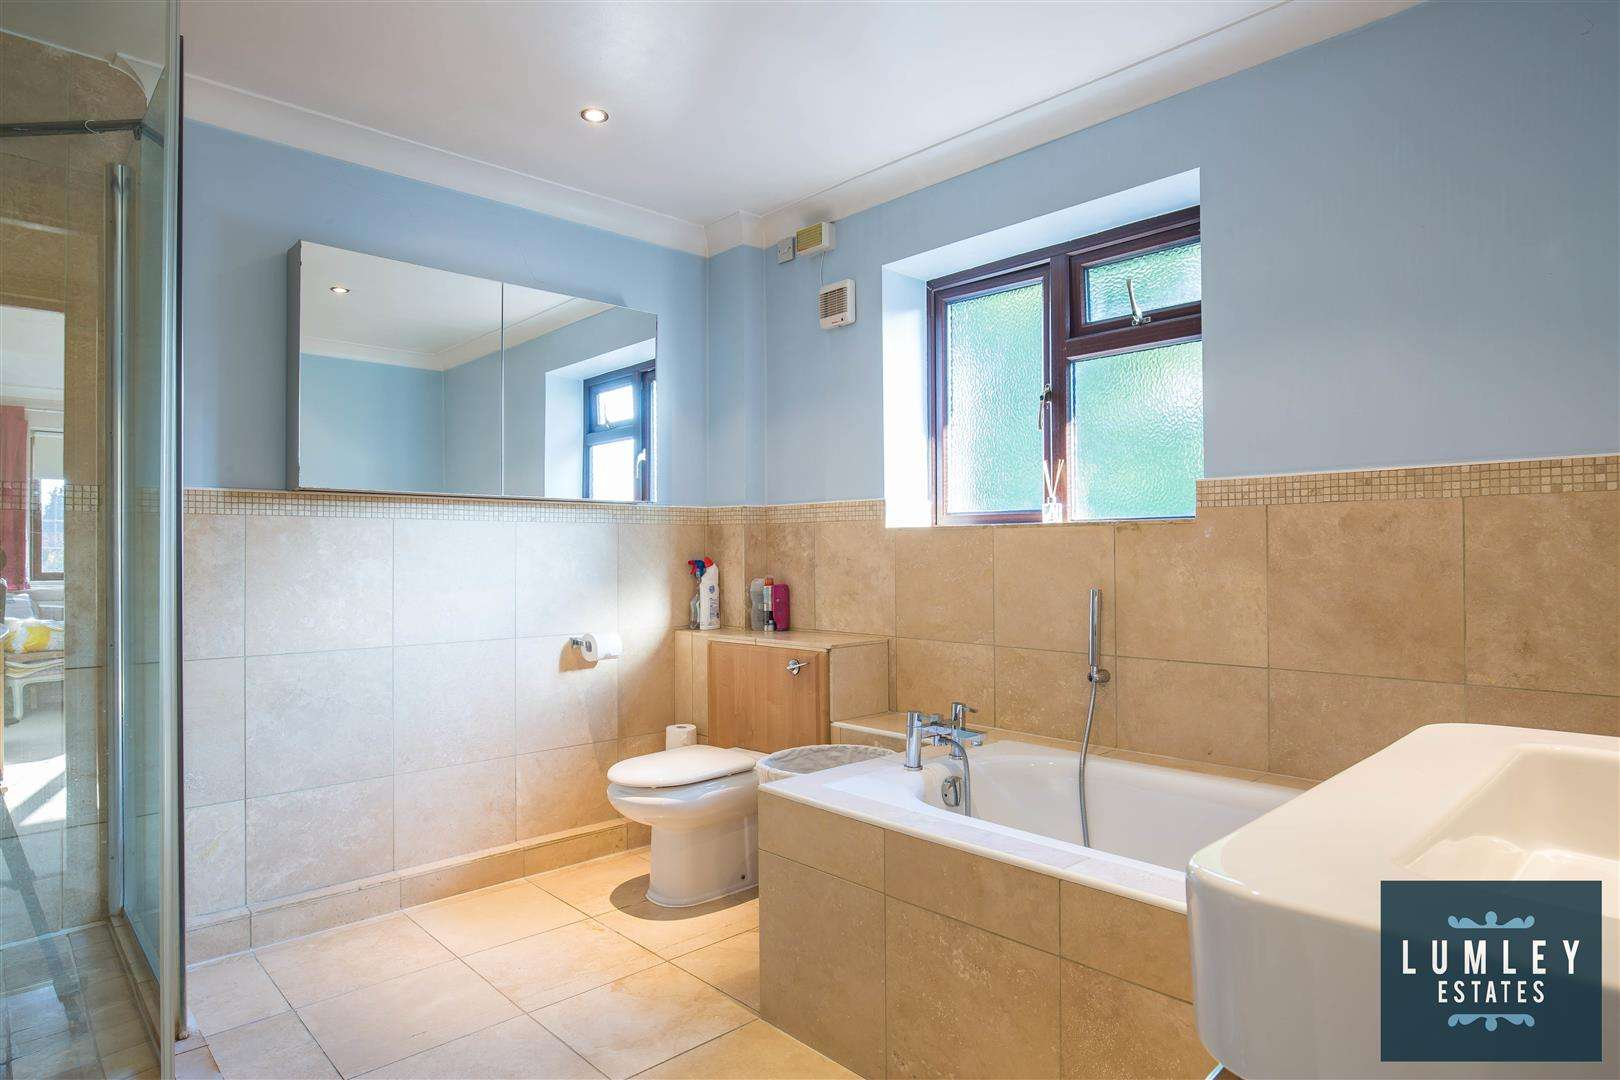 6 bed to rent - (Property Image 11)